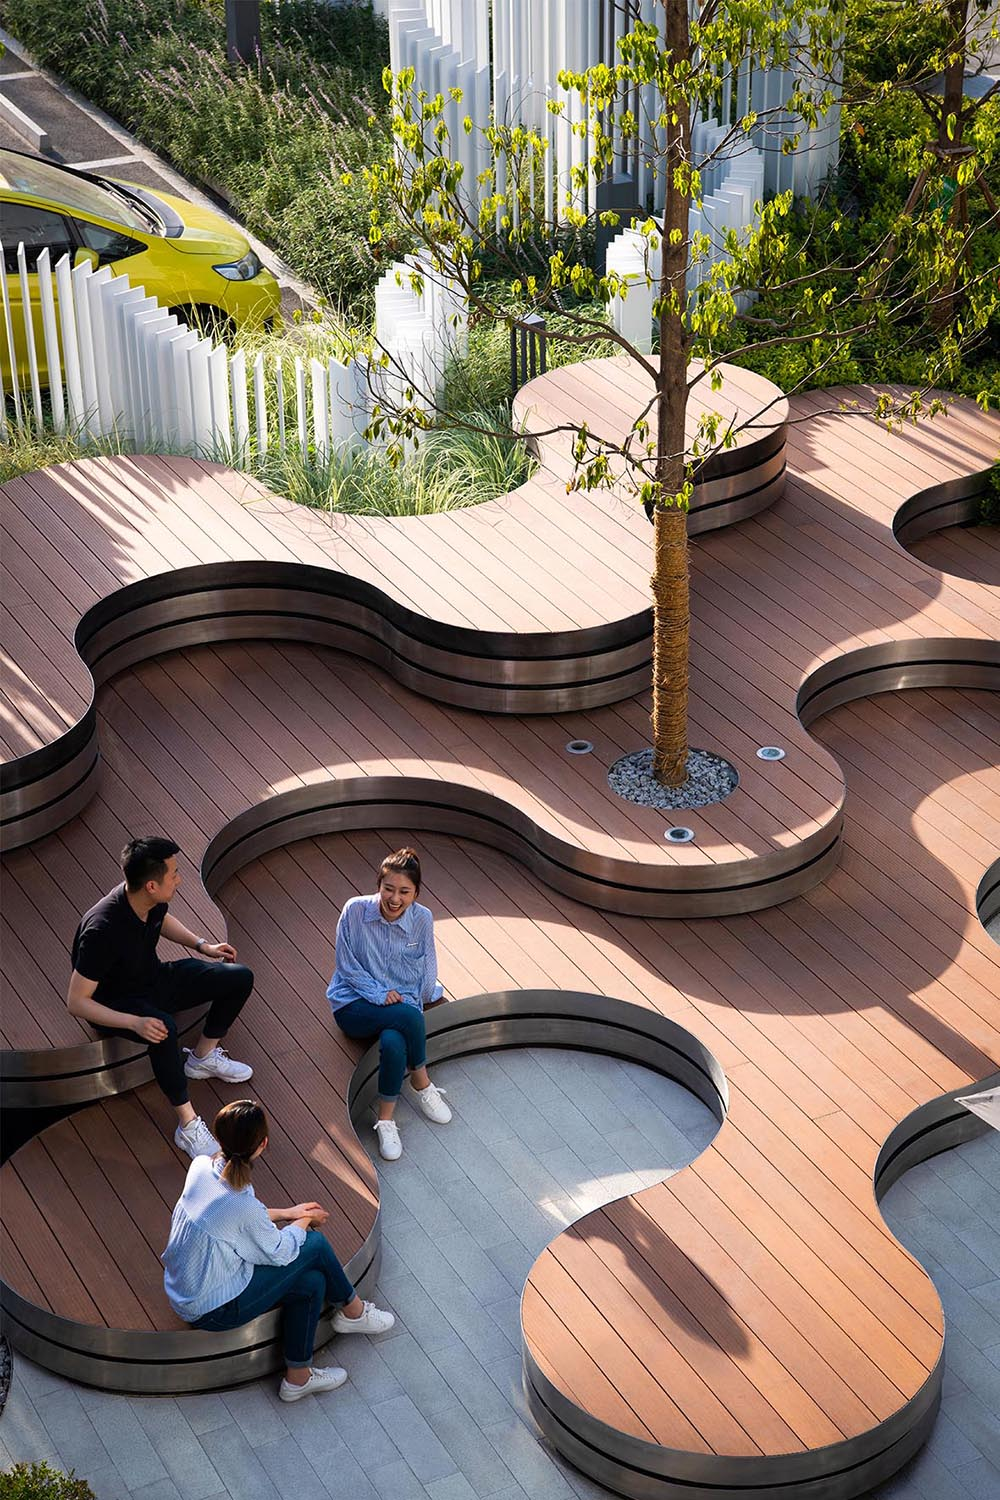 A landscaped park that includes curved tiered seating, a vertical white strip fence, and outdoor lighting.